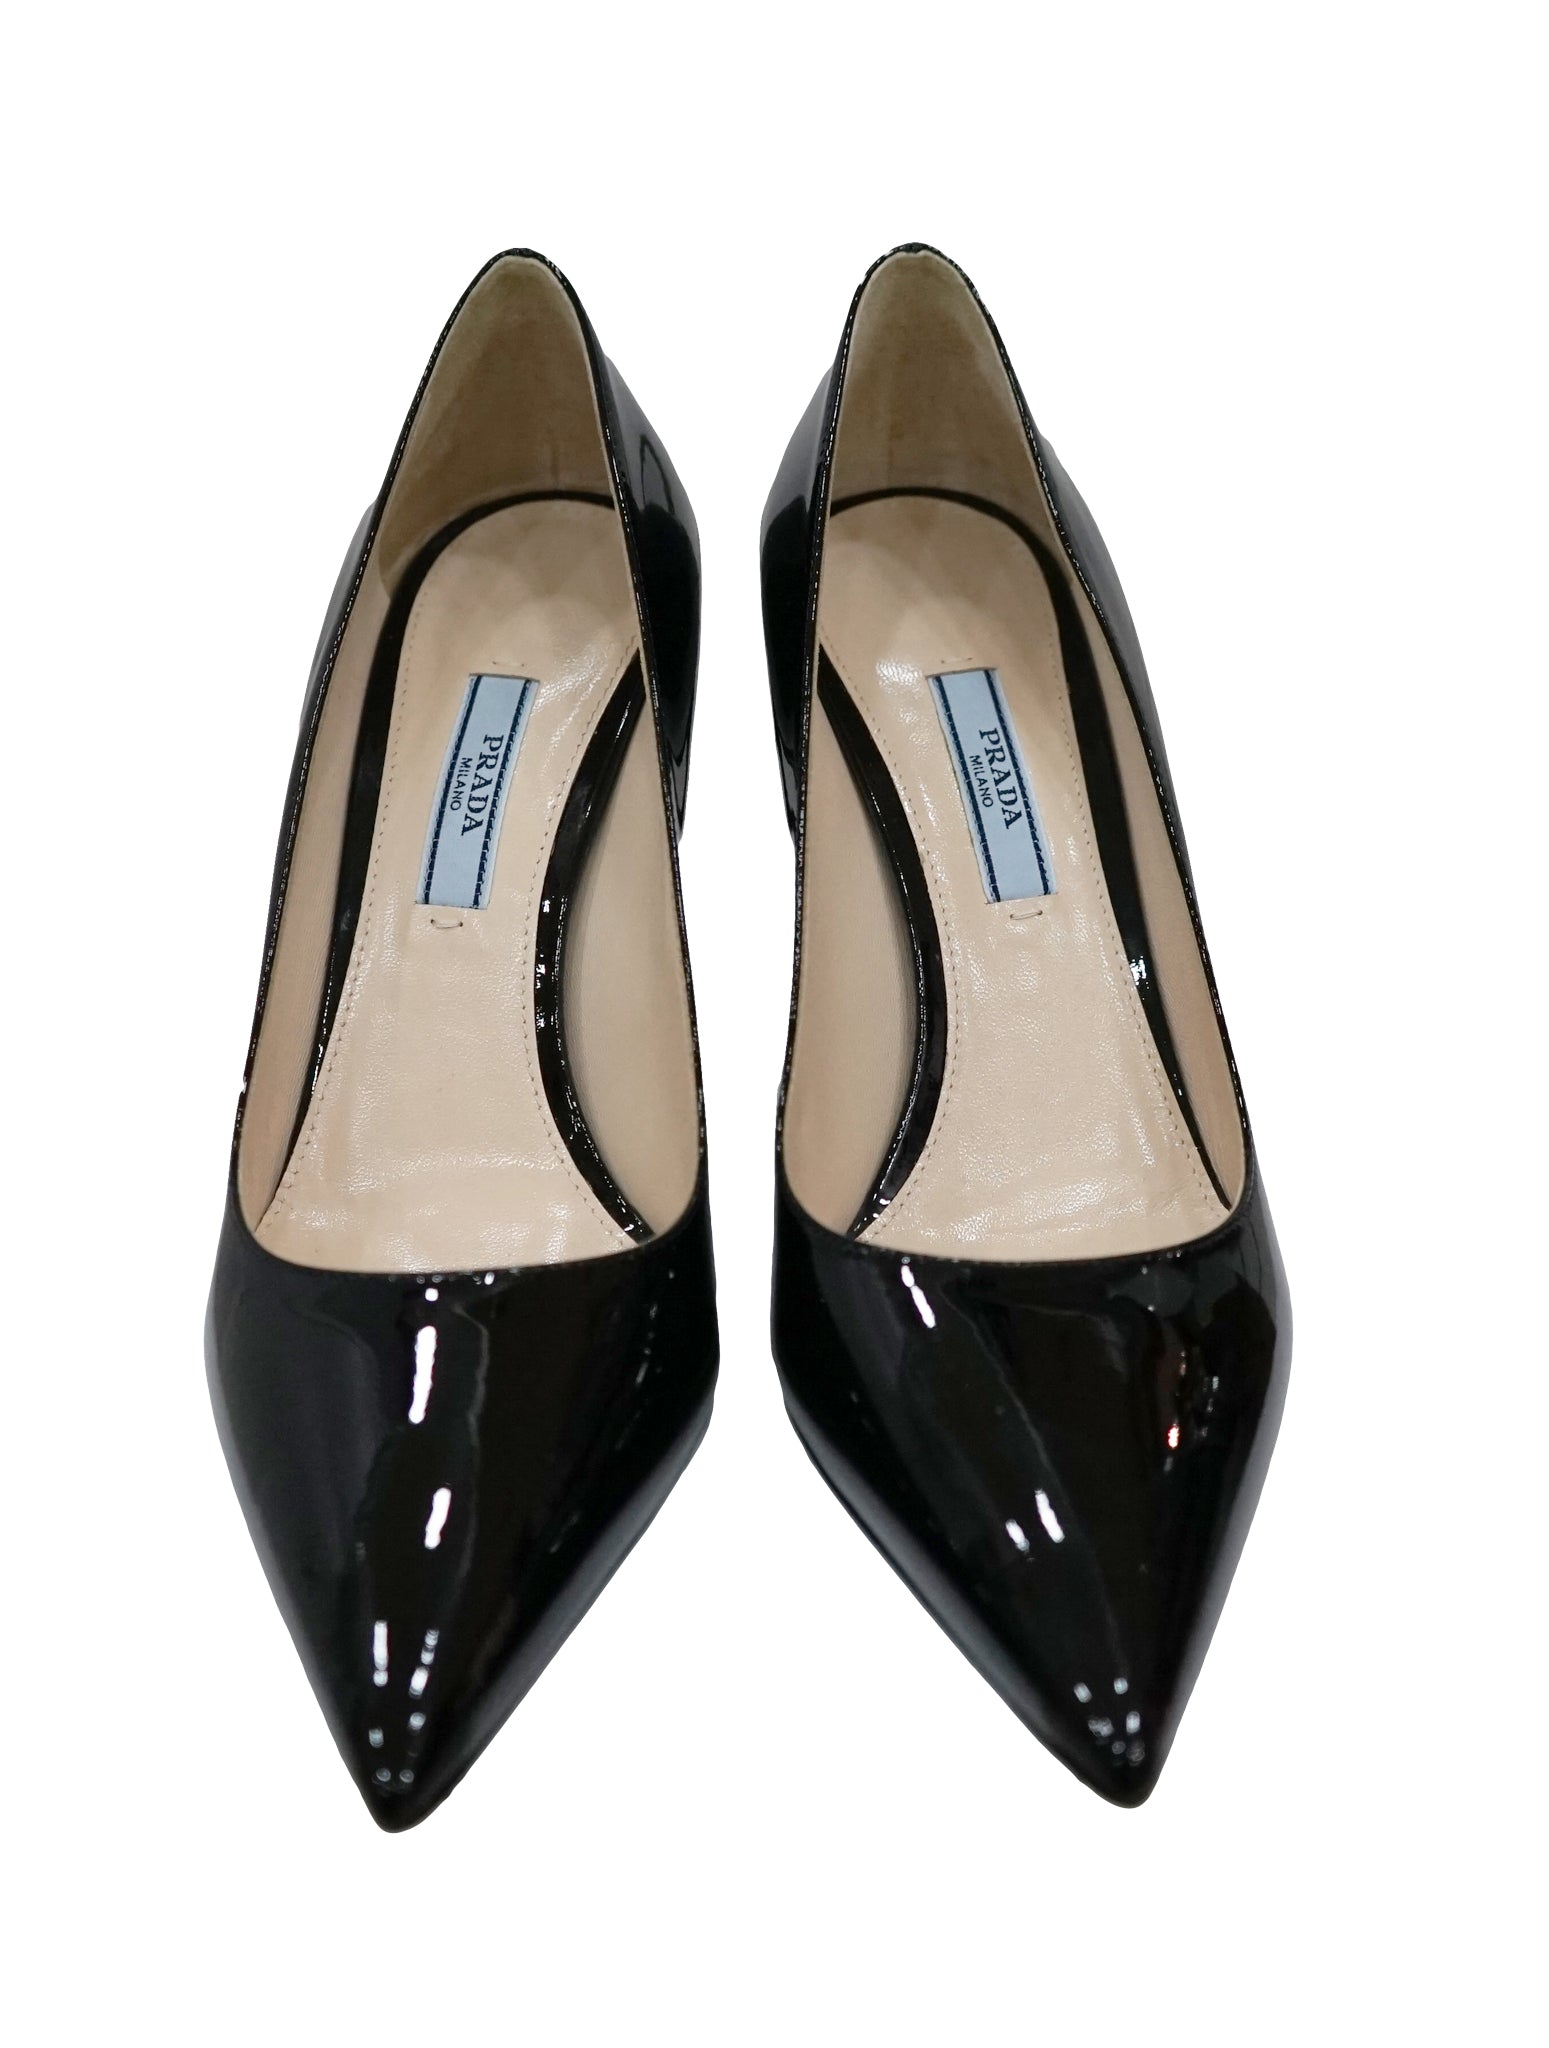 BLACK PATENT POINTED TOE PUMPS